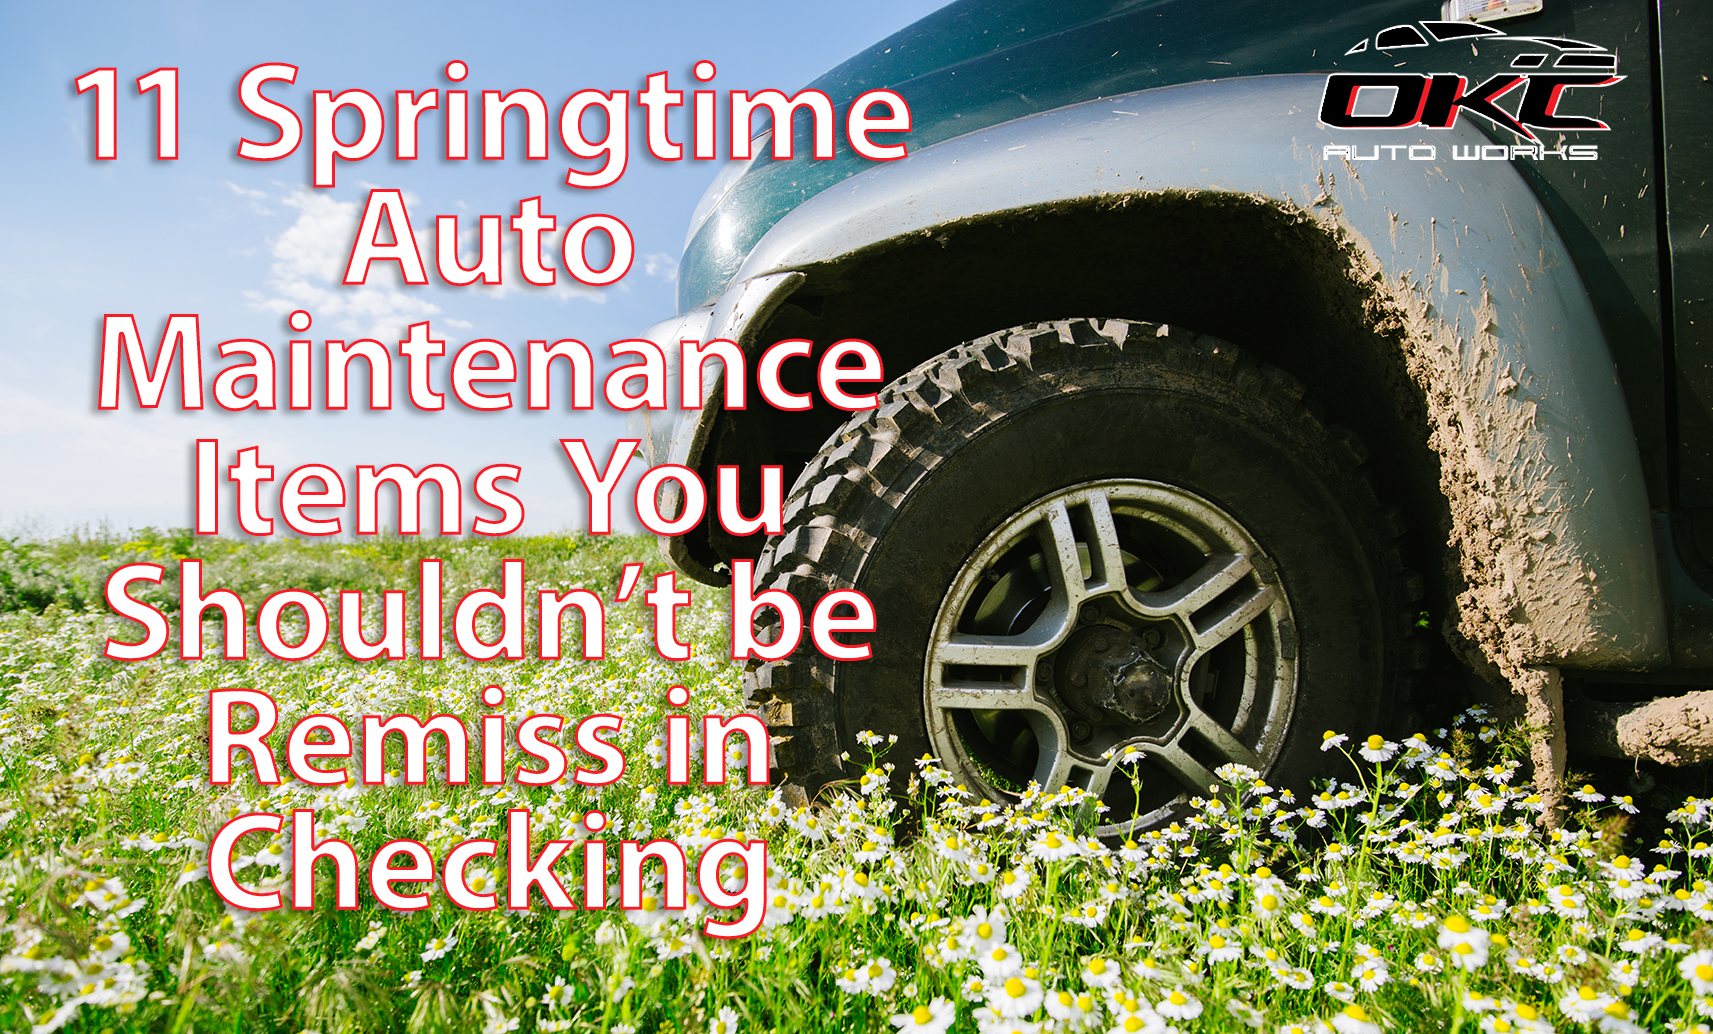 auto maintenance items that you should check in the spring, Springtime Auto Maintenance